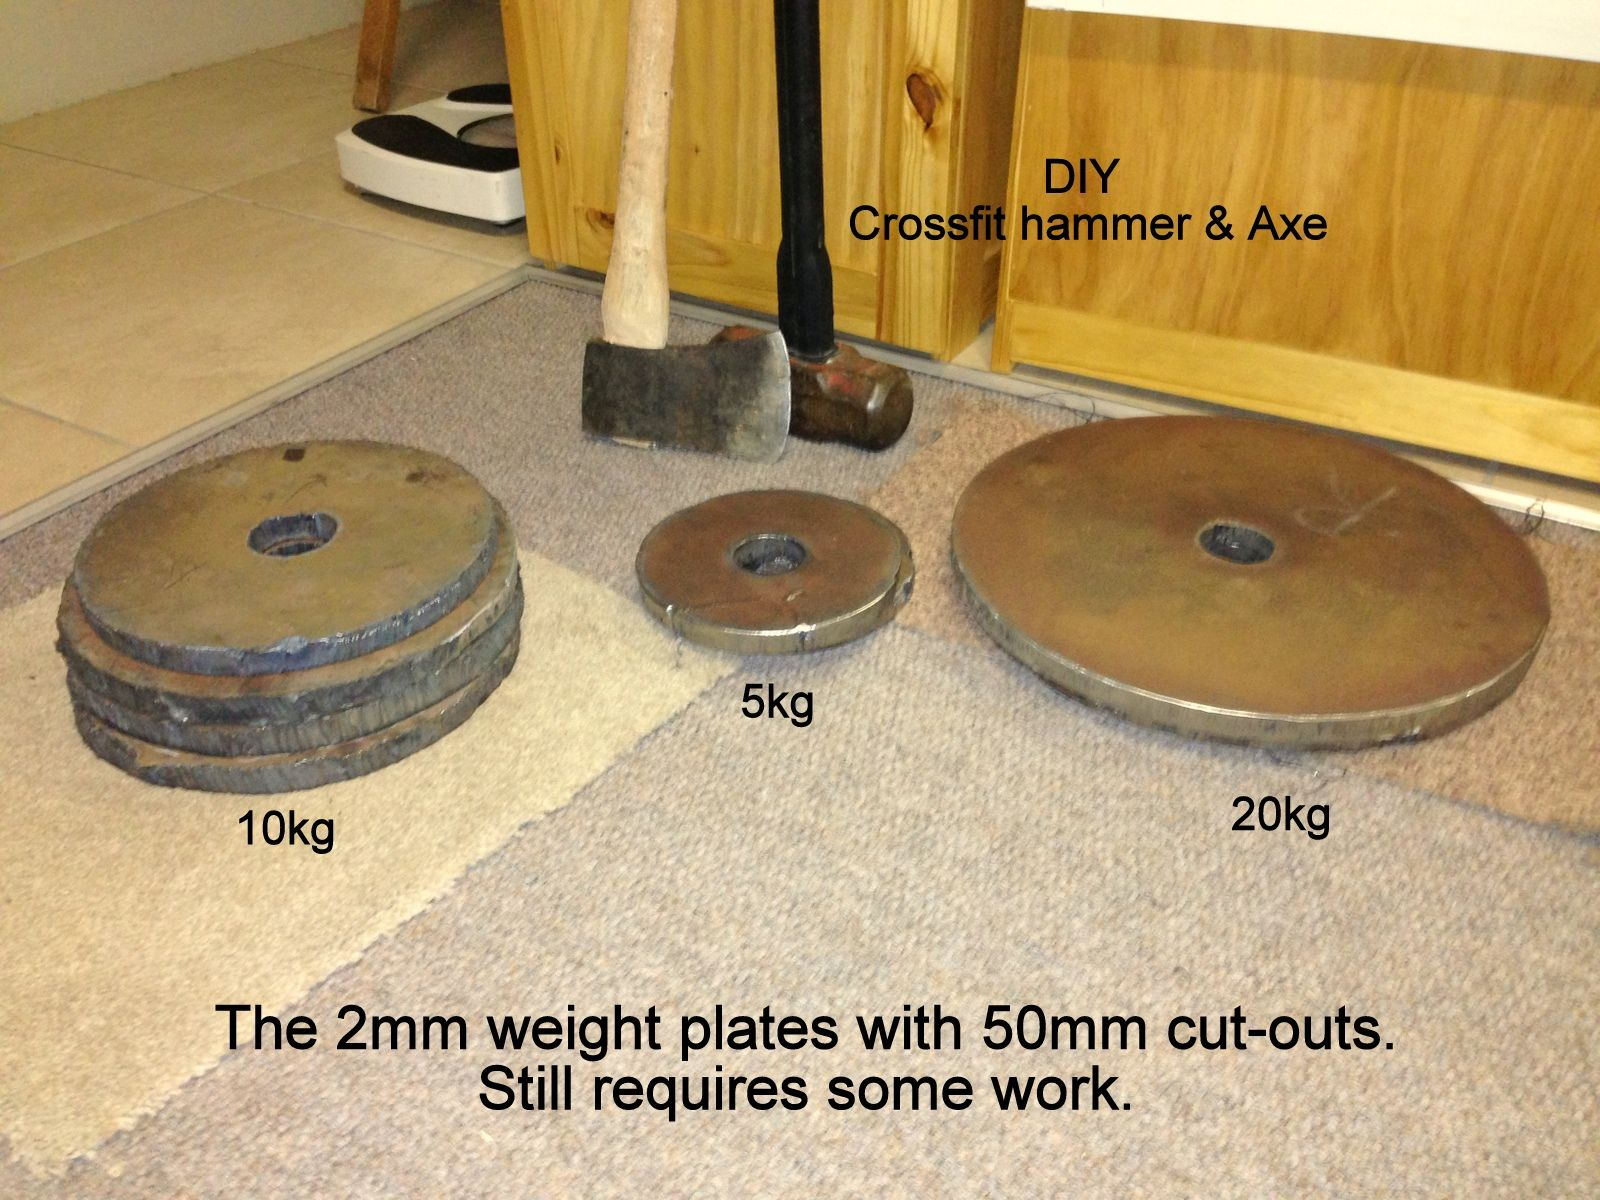 Pin By Nicole Jellum On Diy Crossfit Fitness Diy Home Gym Home Made Gym Crossfit Gym